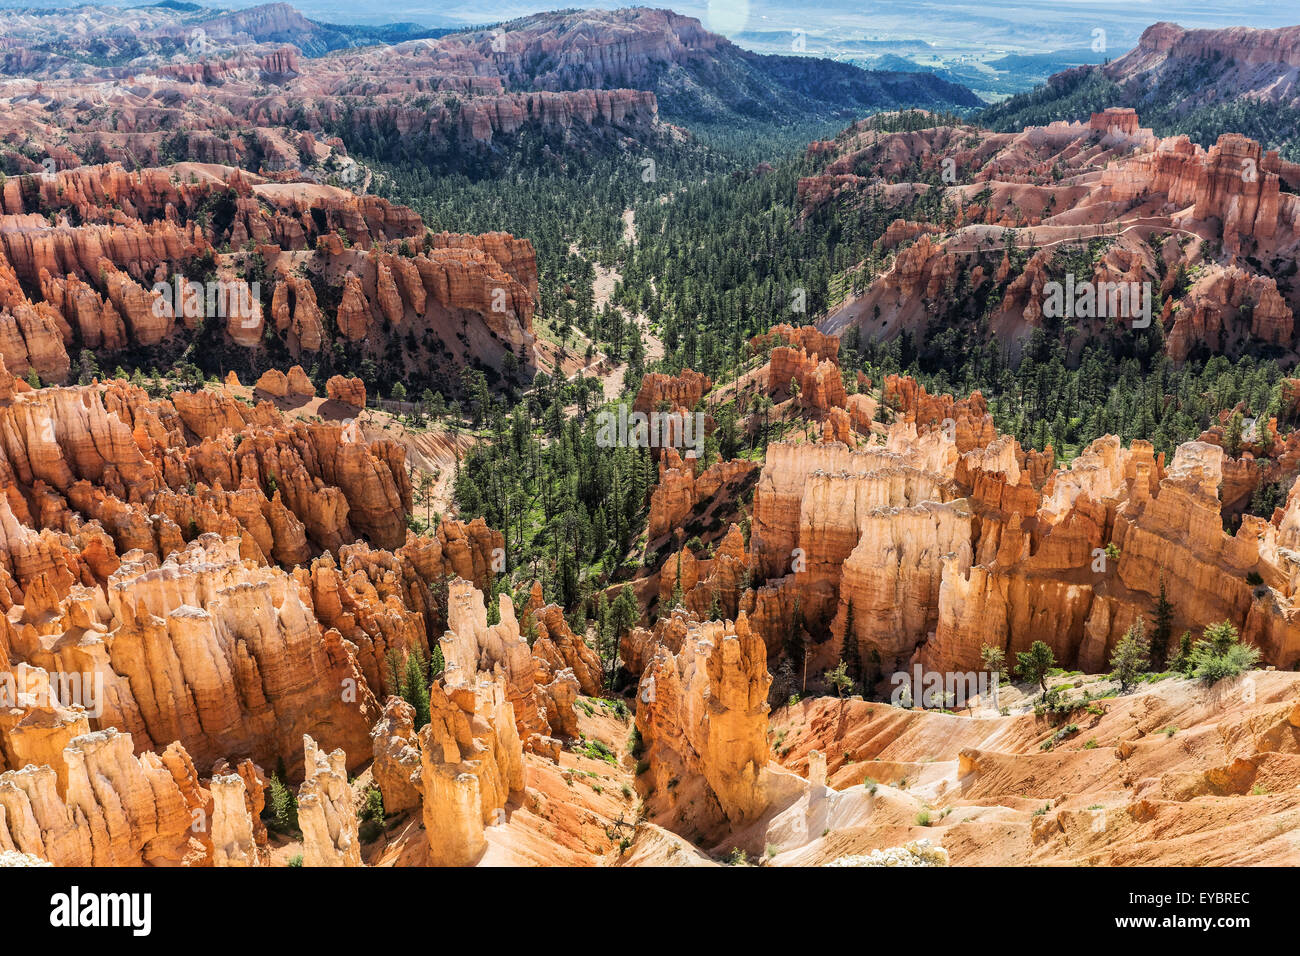 Bryce Canyon National Park, Utah - Stock Image